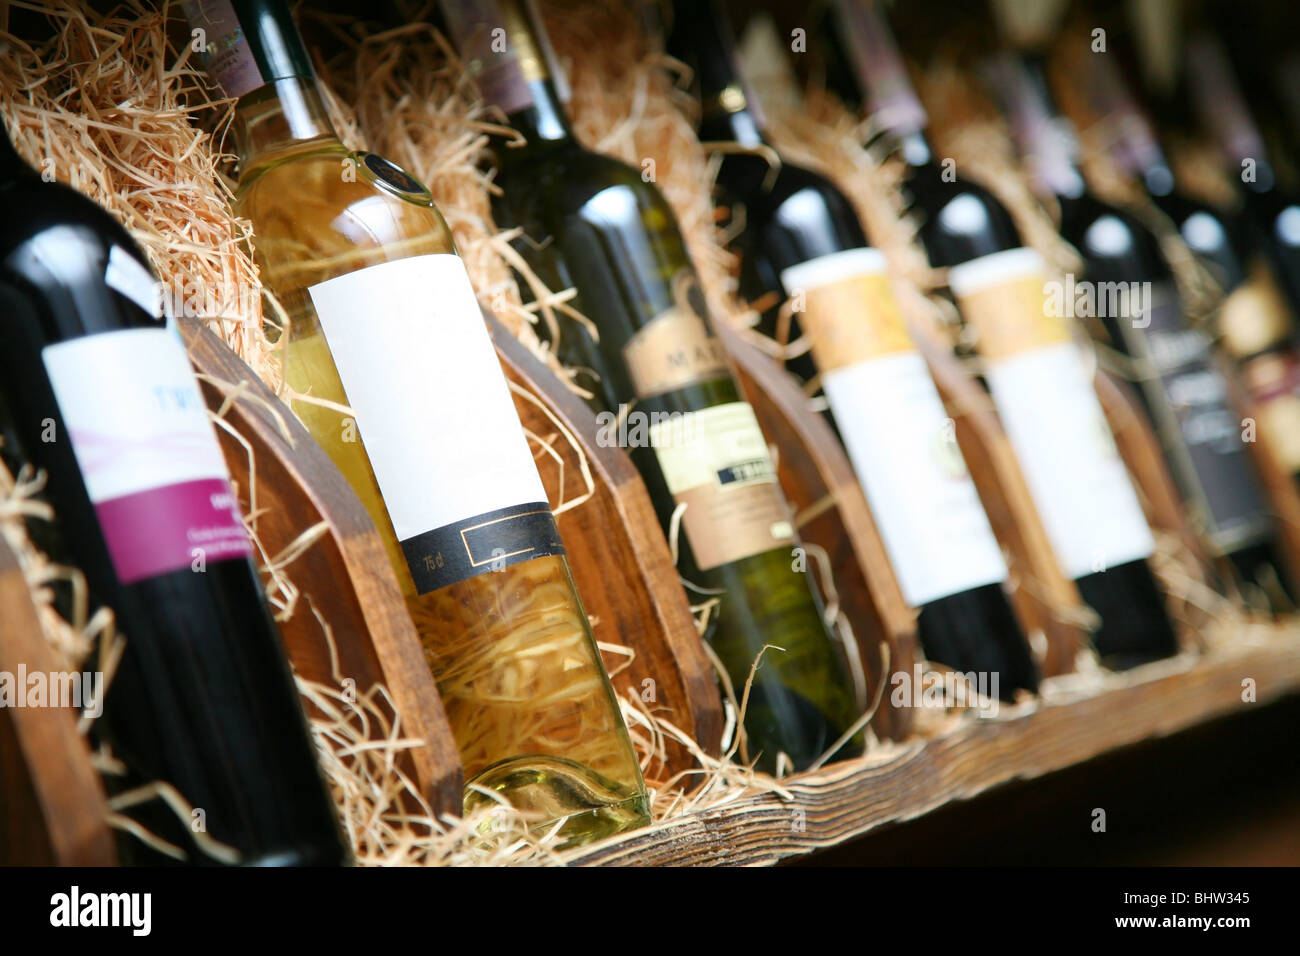 Photo de gros plan wineshelf. Bouteilles pondre plus de paille. Photo Stock